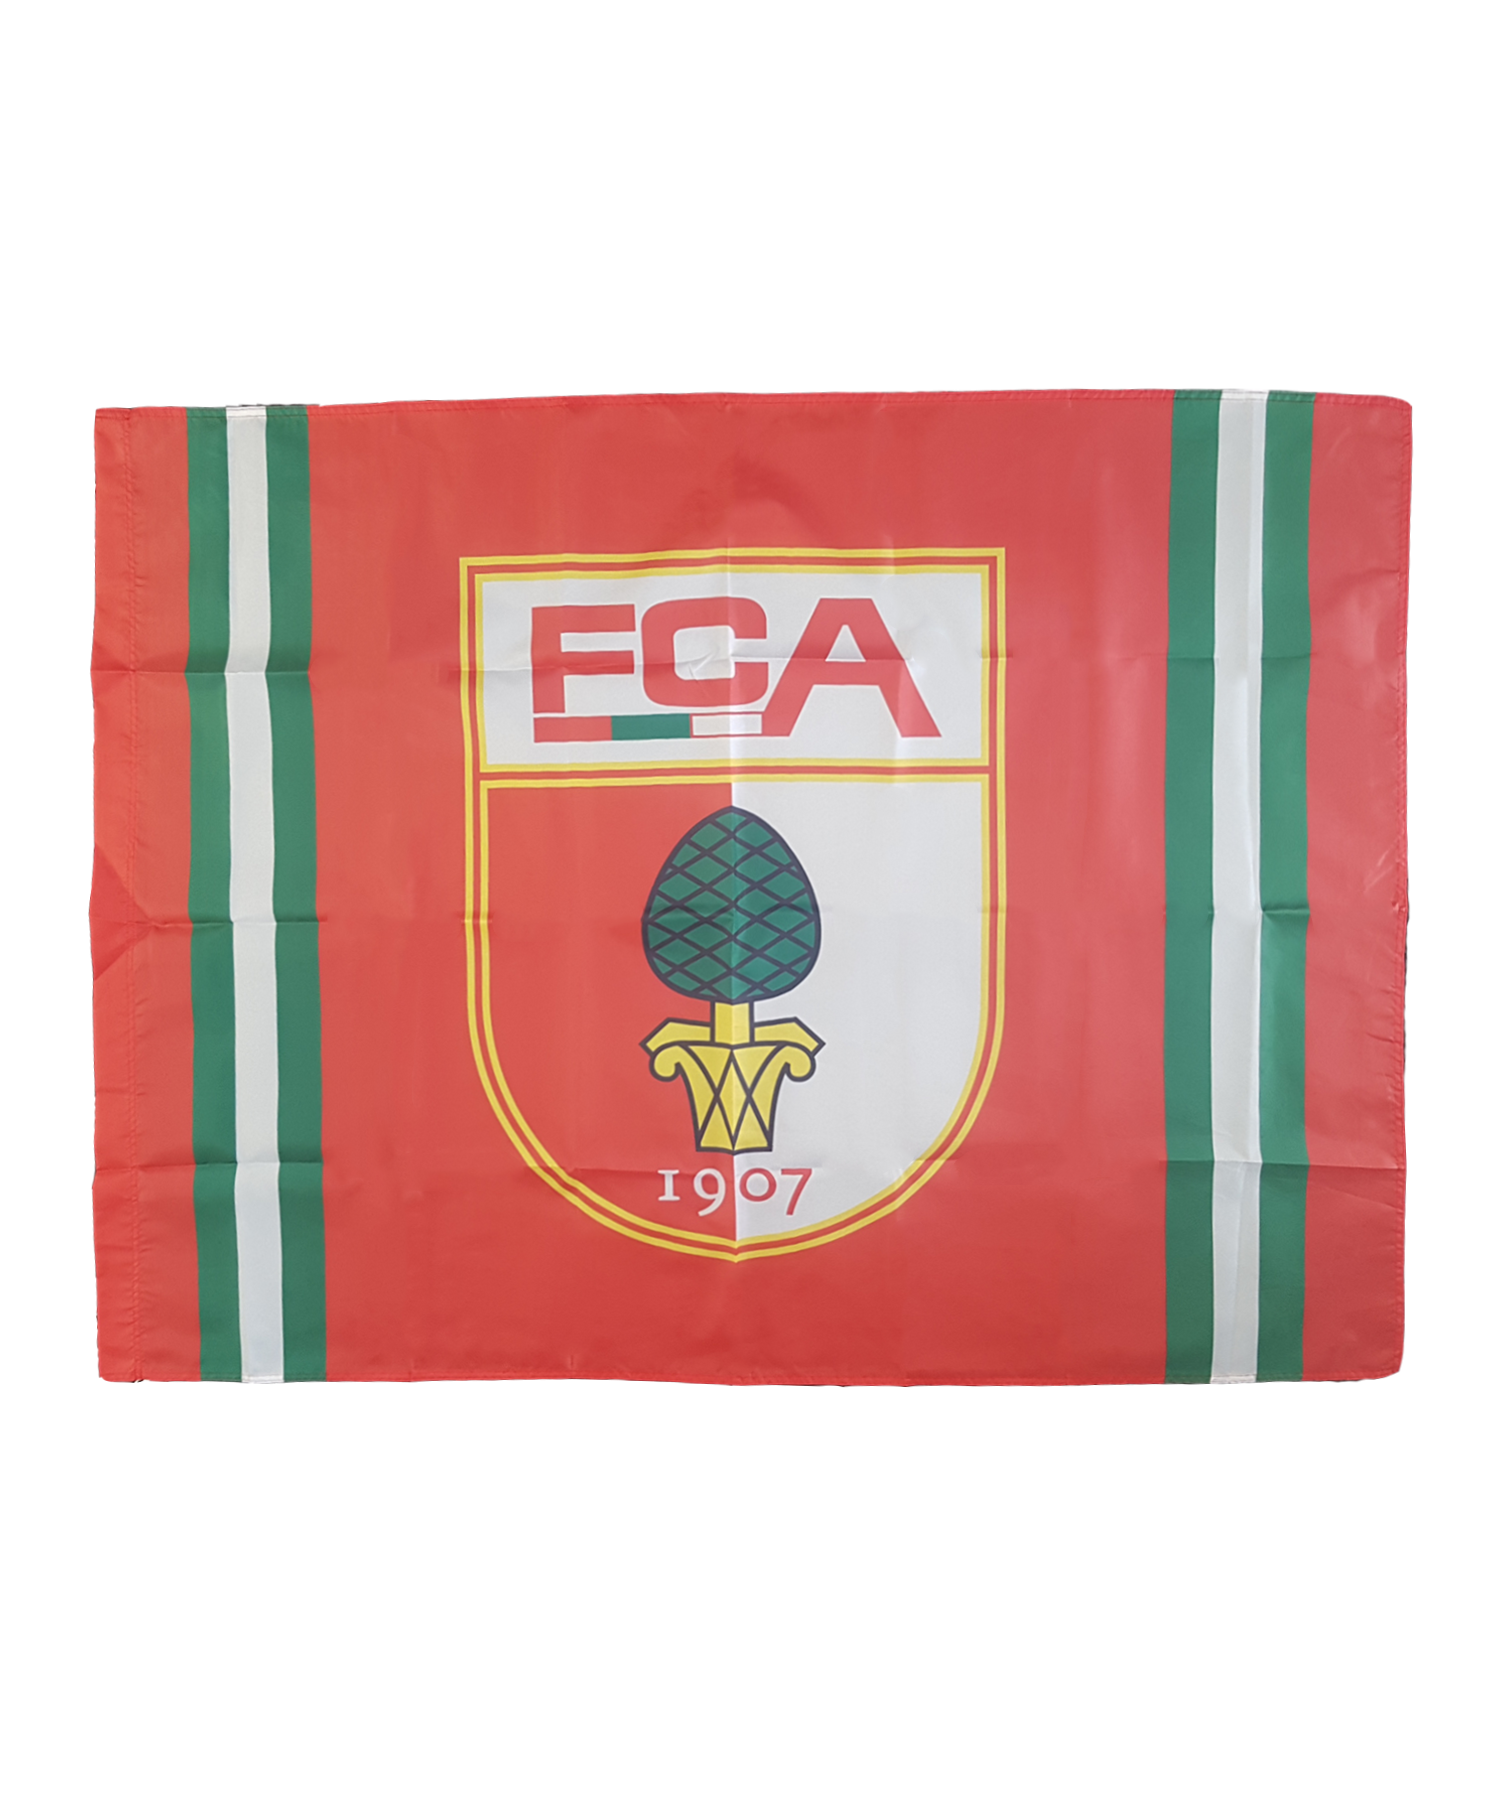 Fahne Rot Weiß Rot: FC Augsburg Fahne Logo 100x140cm Mit Holzstock Rot